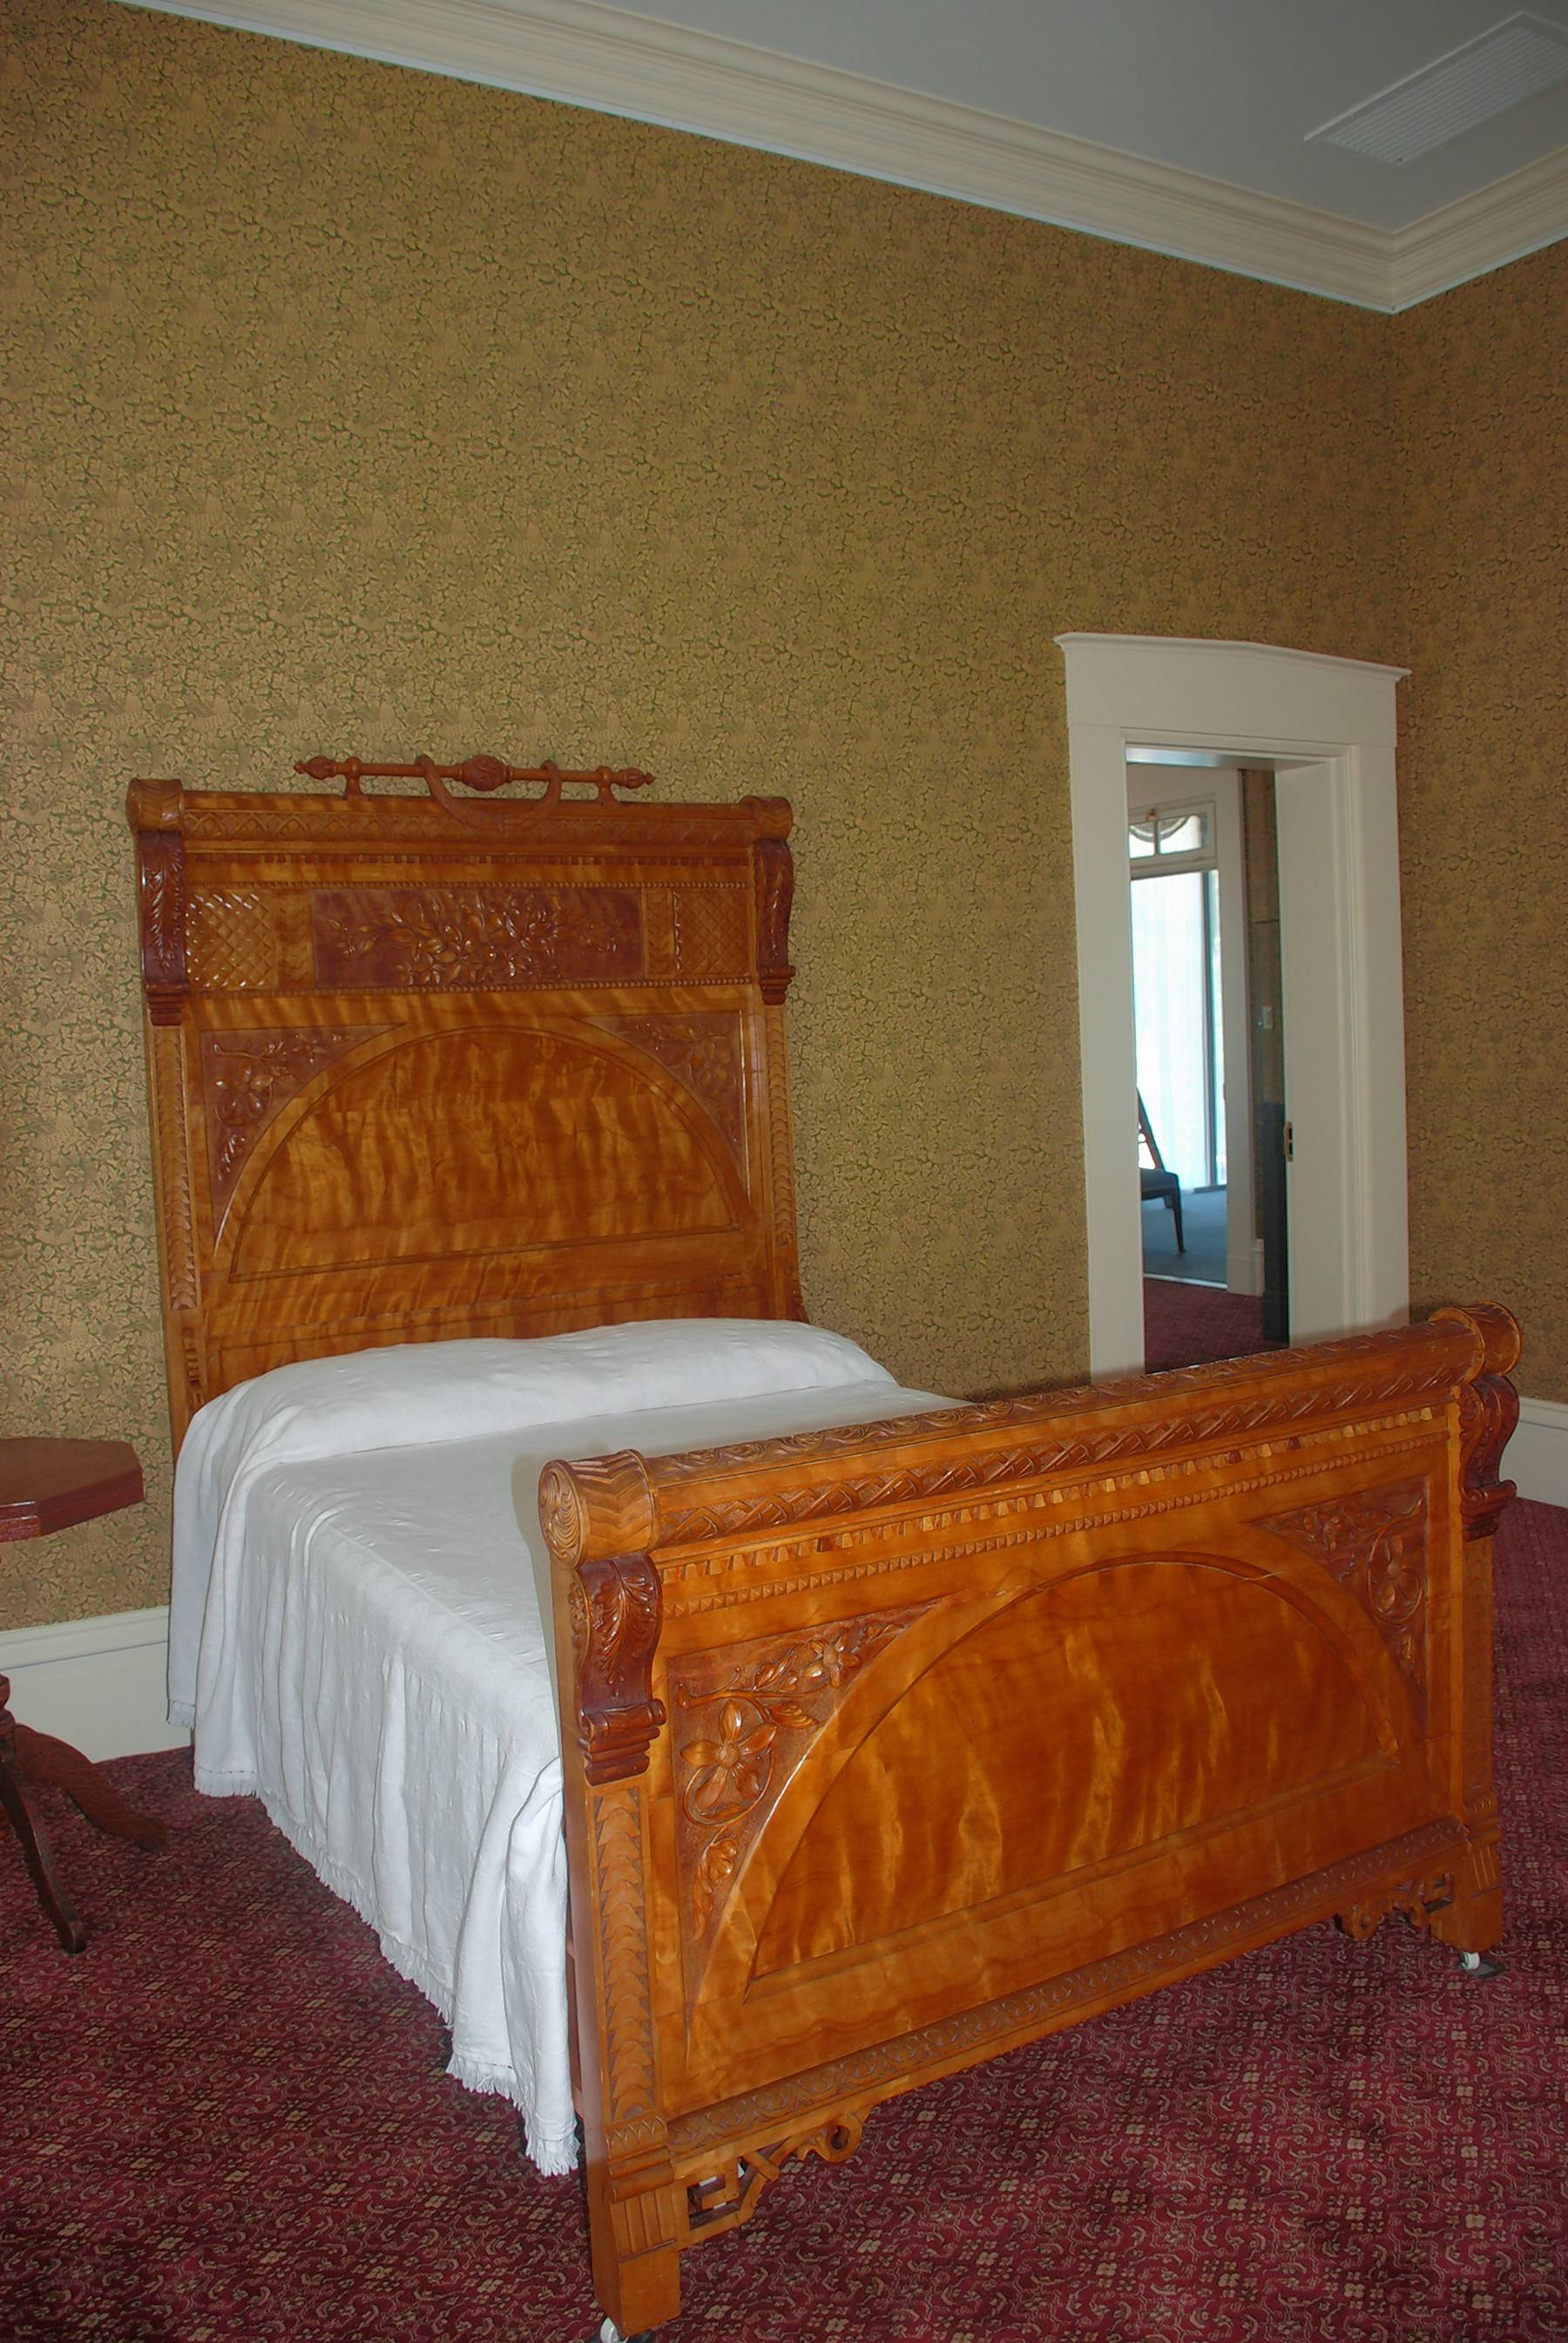 A farmer in Carthage carved bed and a matching furniture piece for Chicago's Columbian Exposition and then they were donated to the state while Gov. John Altgeld was in office (1893-1897). They now adorn a bedroom dedicated to the 1890s.